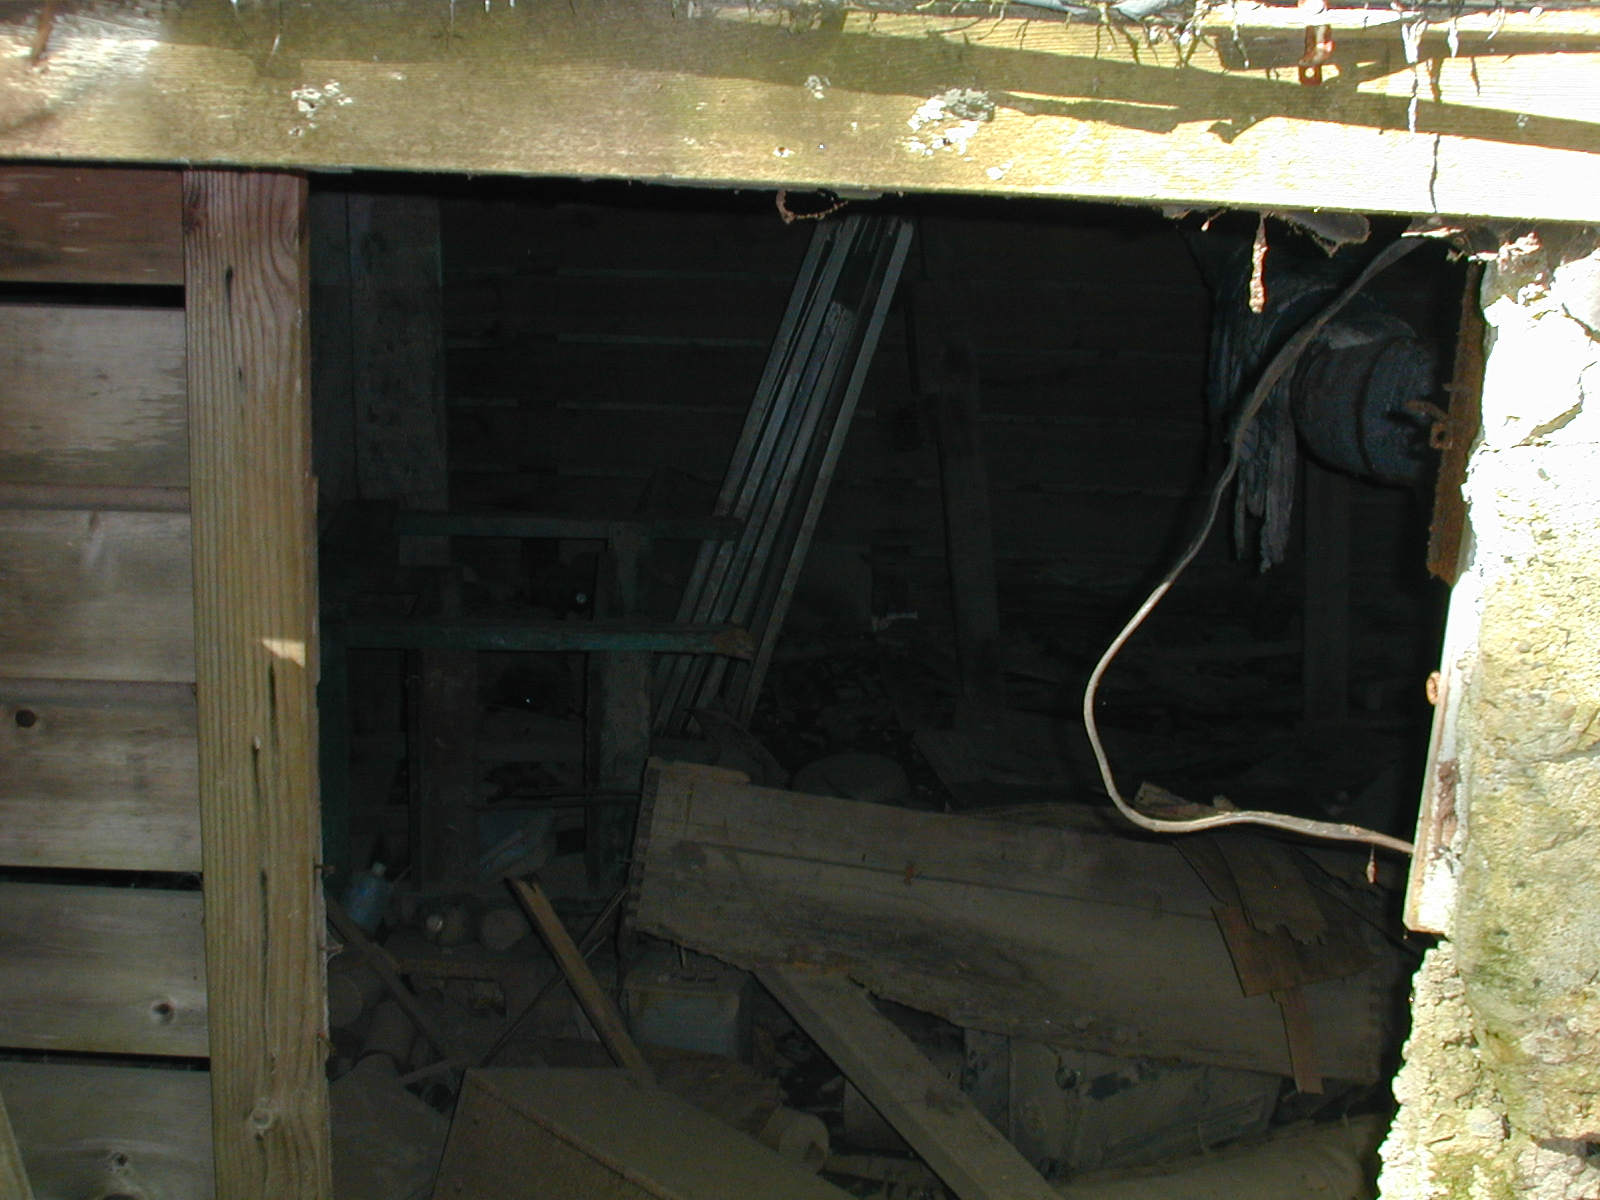 Basement of the second house